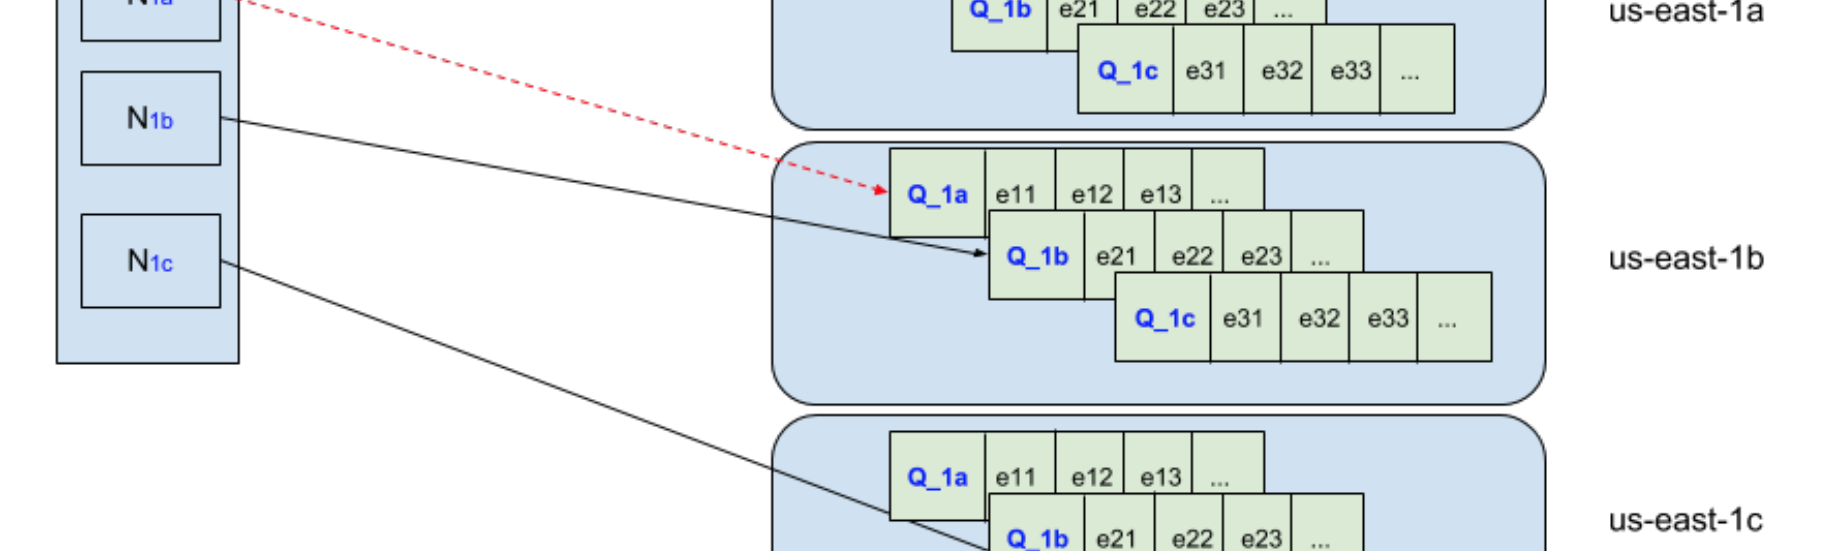 Distributed delay queues based on Dynomite - Netflix